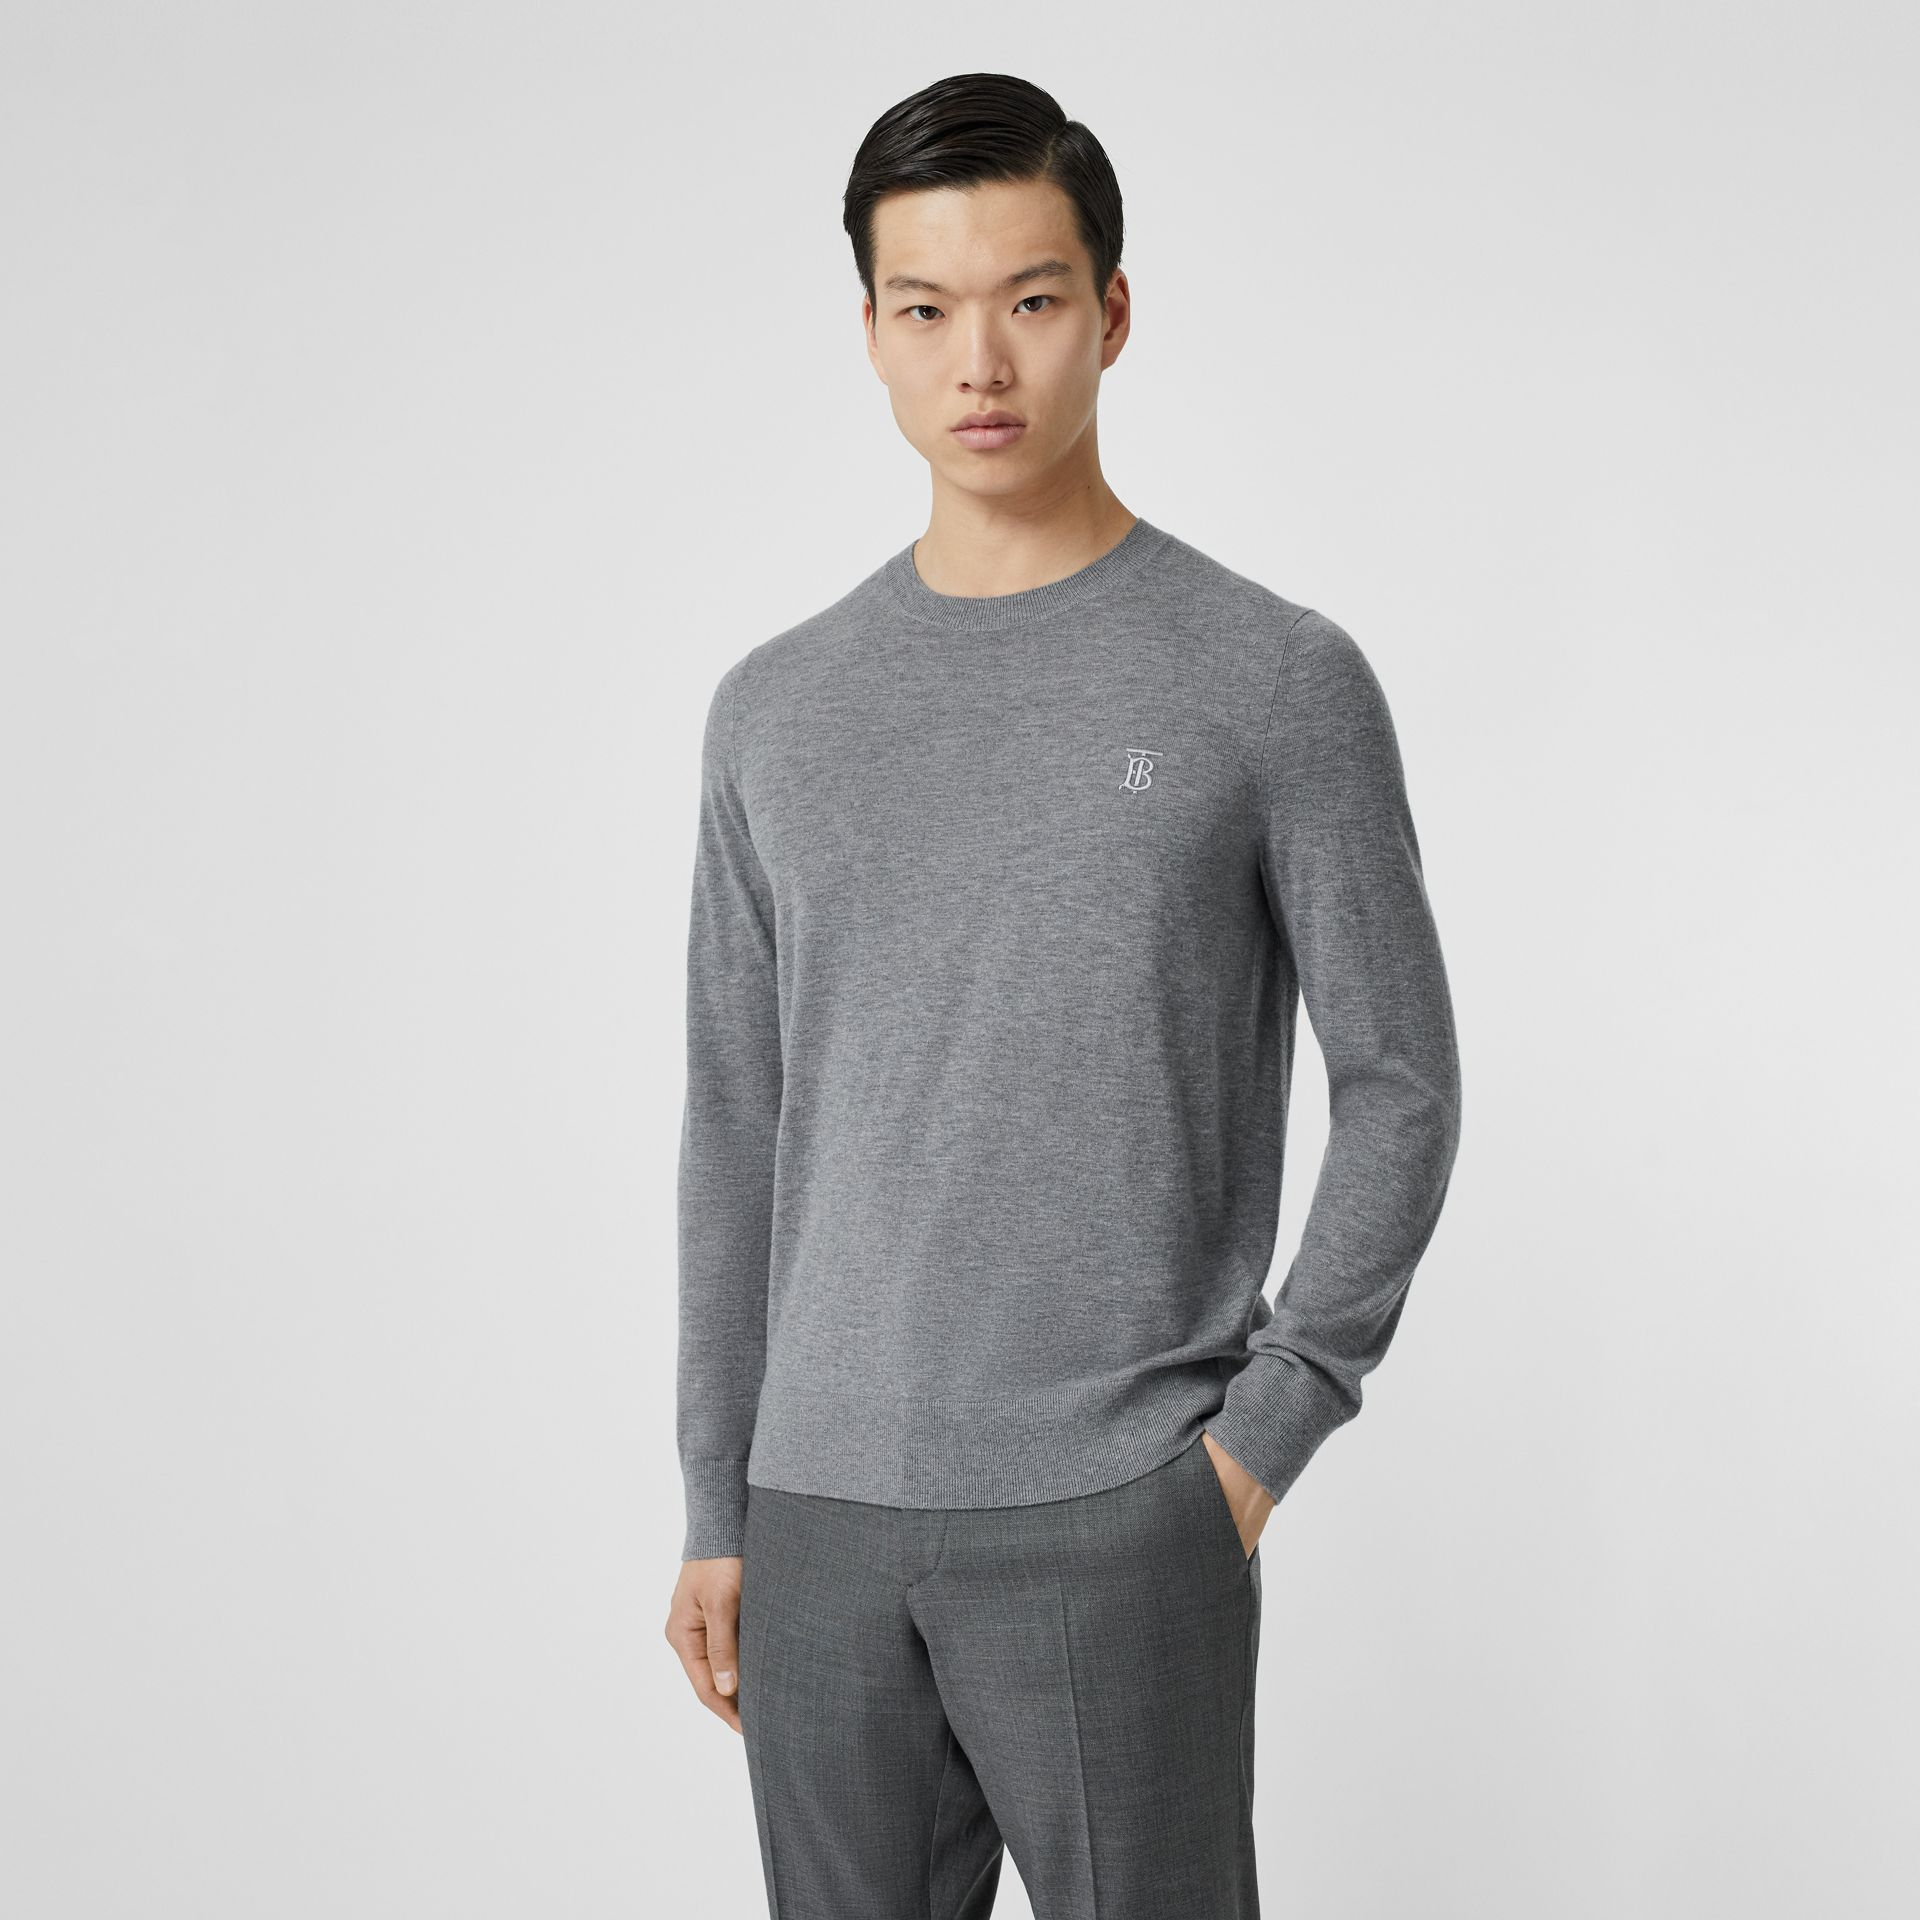 Monogram Motif Cashmere Sweater in Pale Grey Melange - Men | Burberry - gallery image 4